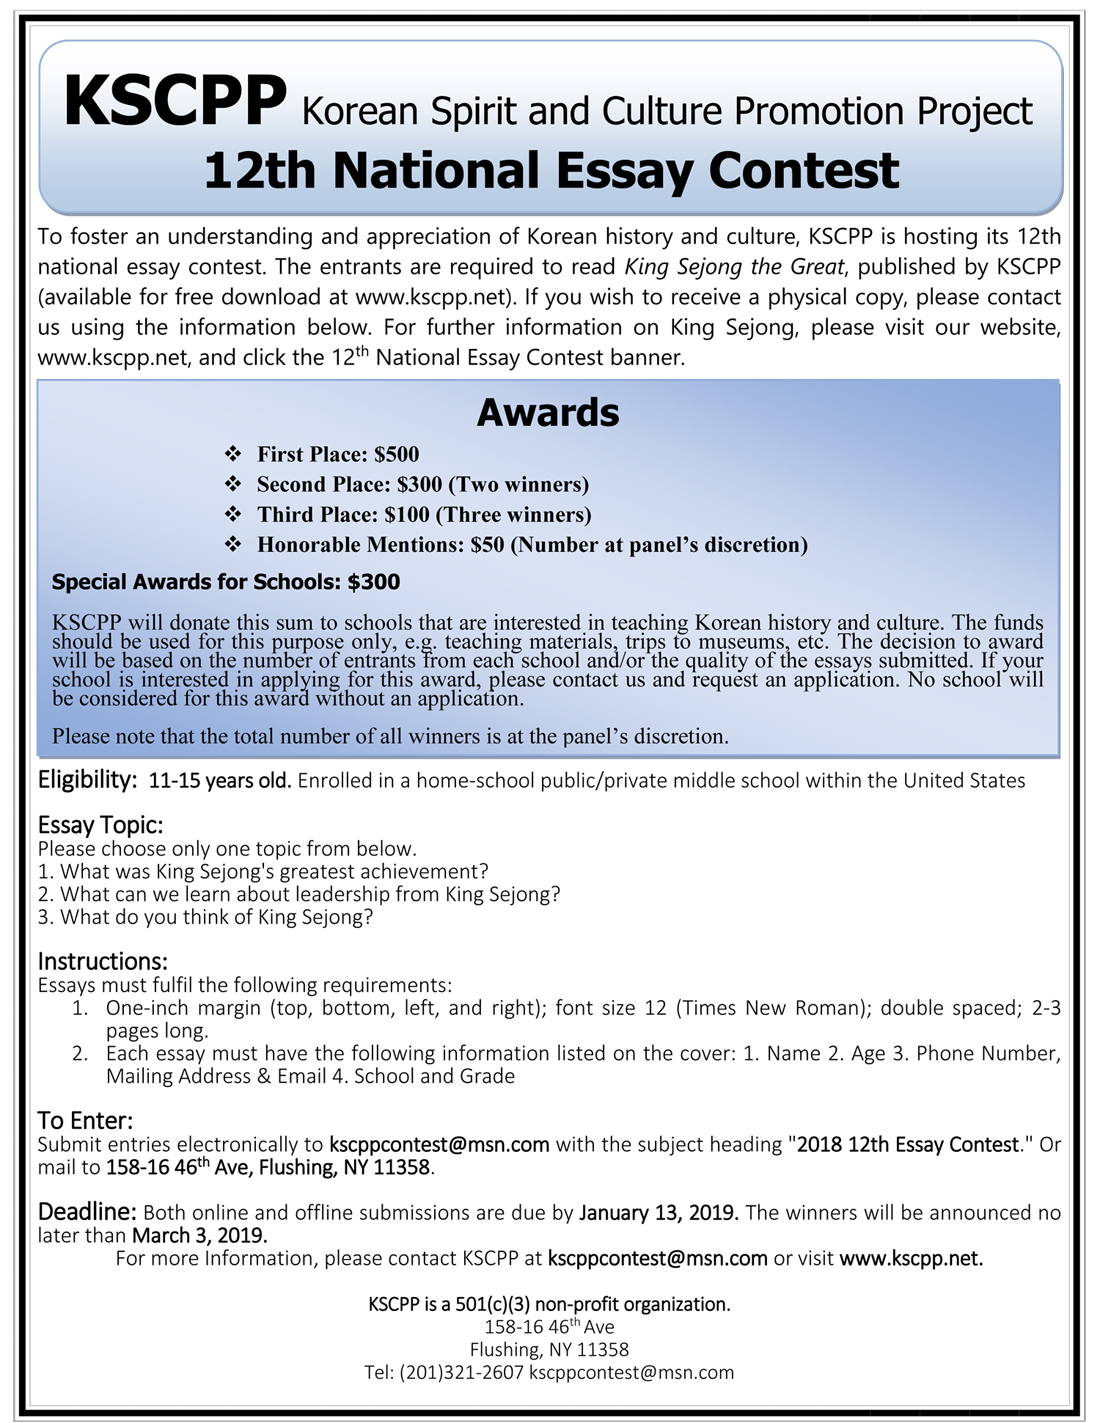 005 Essay Example Contest Amazing Writing High School Contests For Seniors 2018 Full